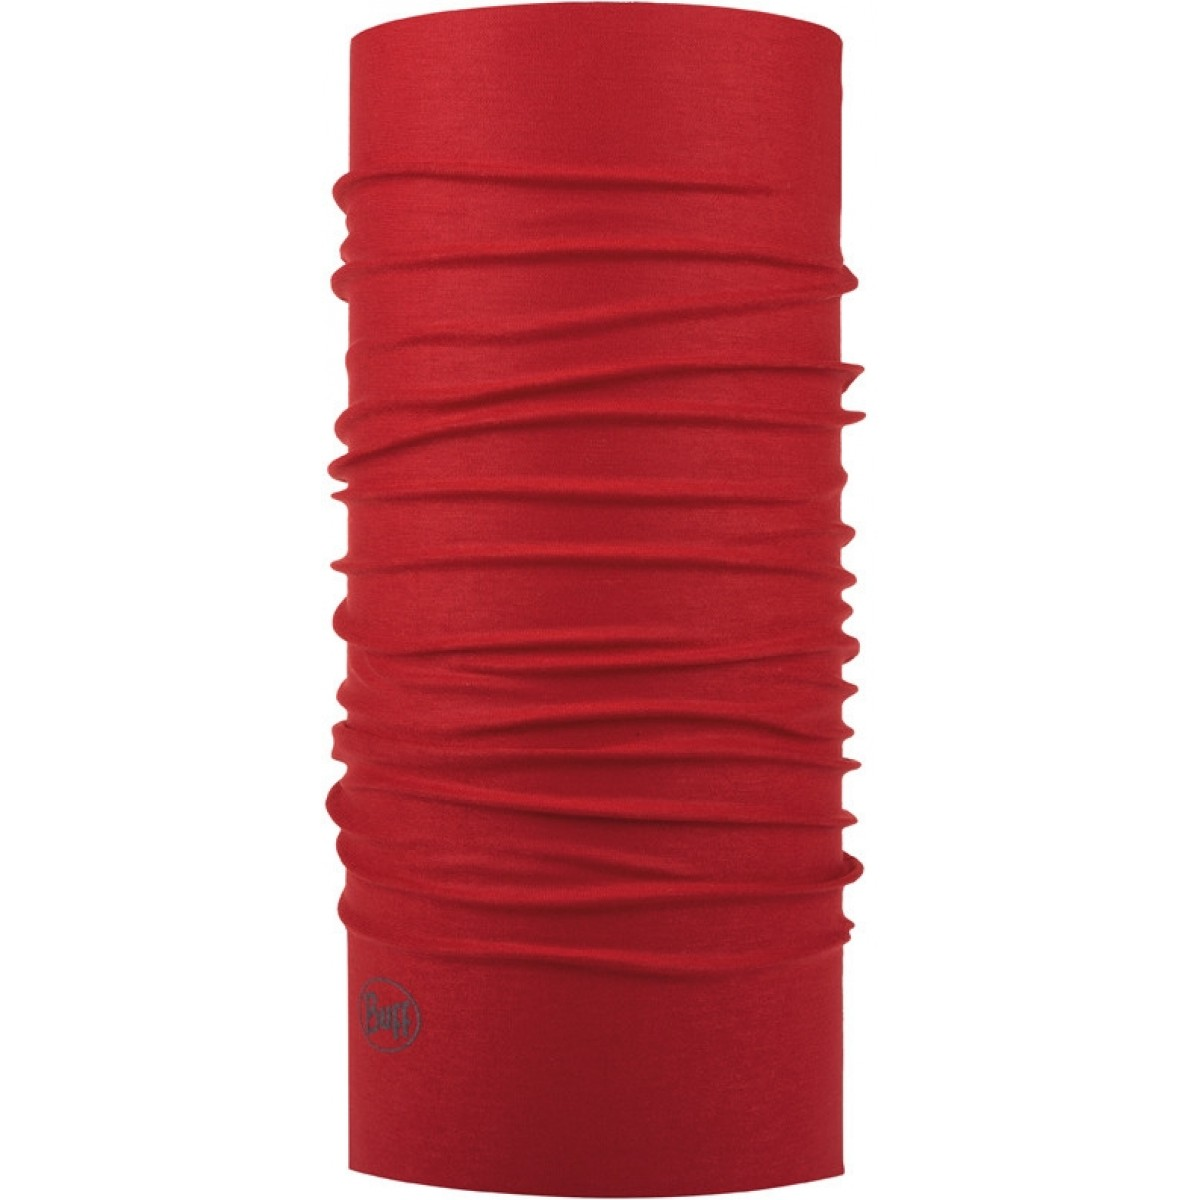 Buff New Original - Solid Red